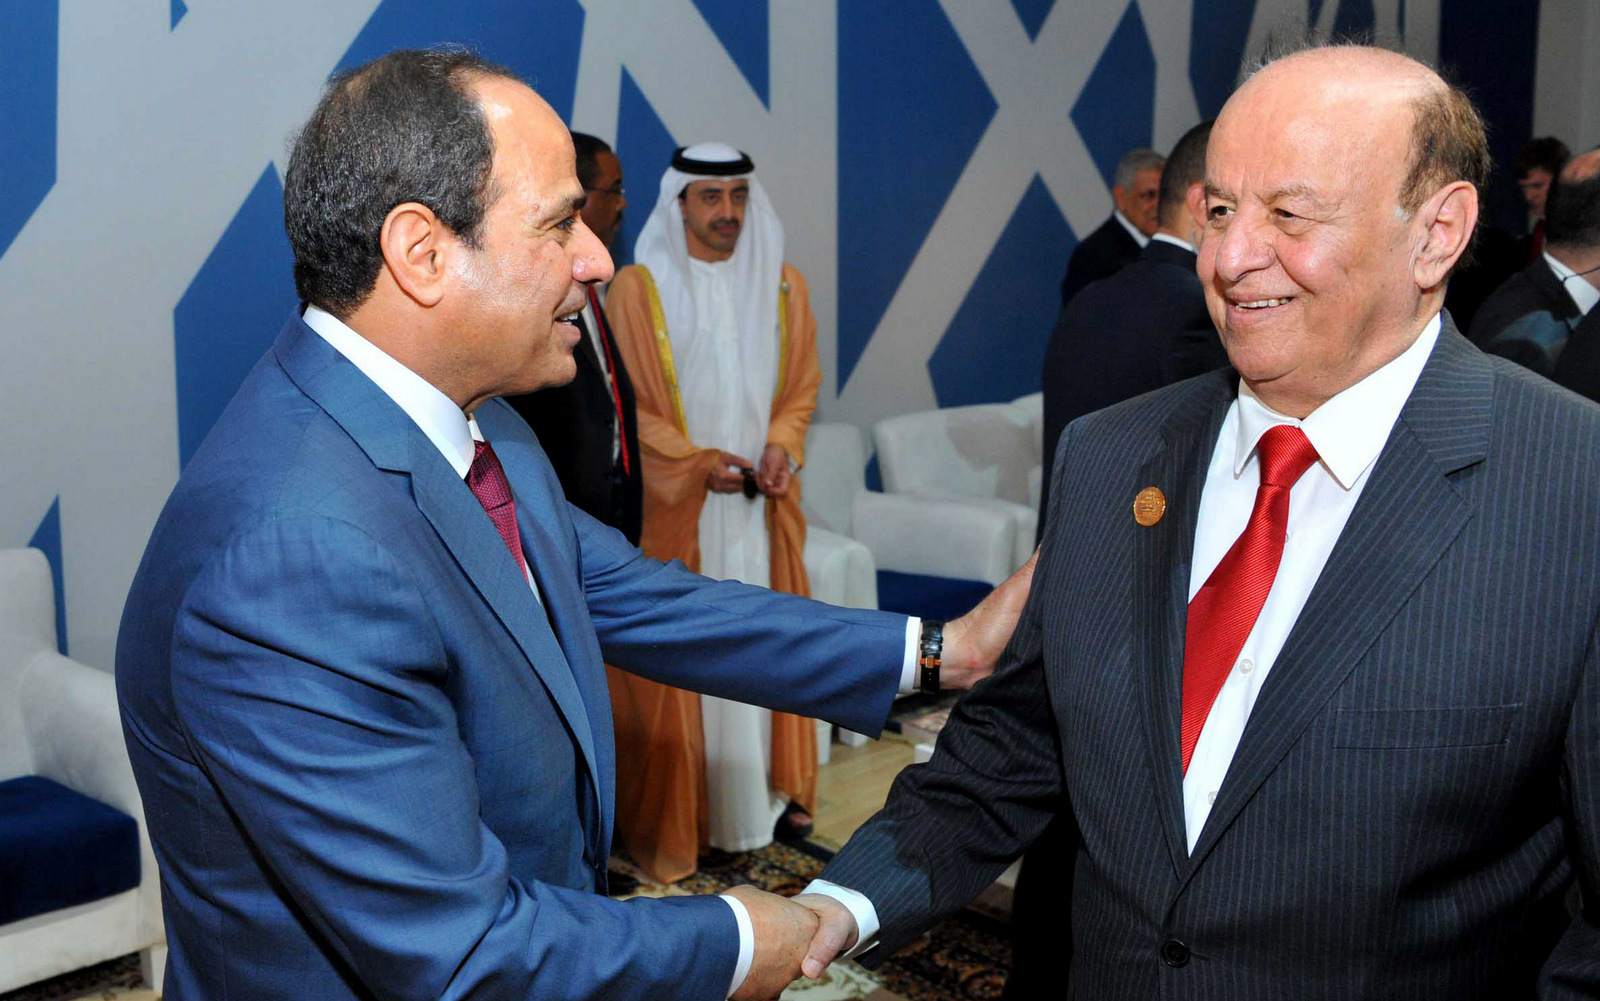 In this picture provided by the office of the Egyptian Presidency, Egyptian President Abdel-Fattah el-Sissi, left, talks to Yemen's exiled President Abed Rabbo Mansour Hadi following a ceremony unveiling a major extension of the Suez Canal in Ismailia, Egypt,, Aug. 6, 2015. (Egyptian Presidency via AP)